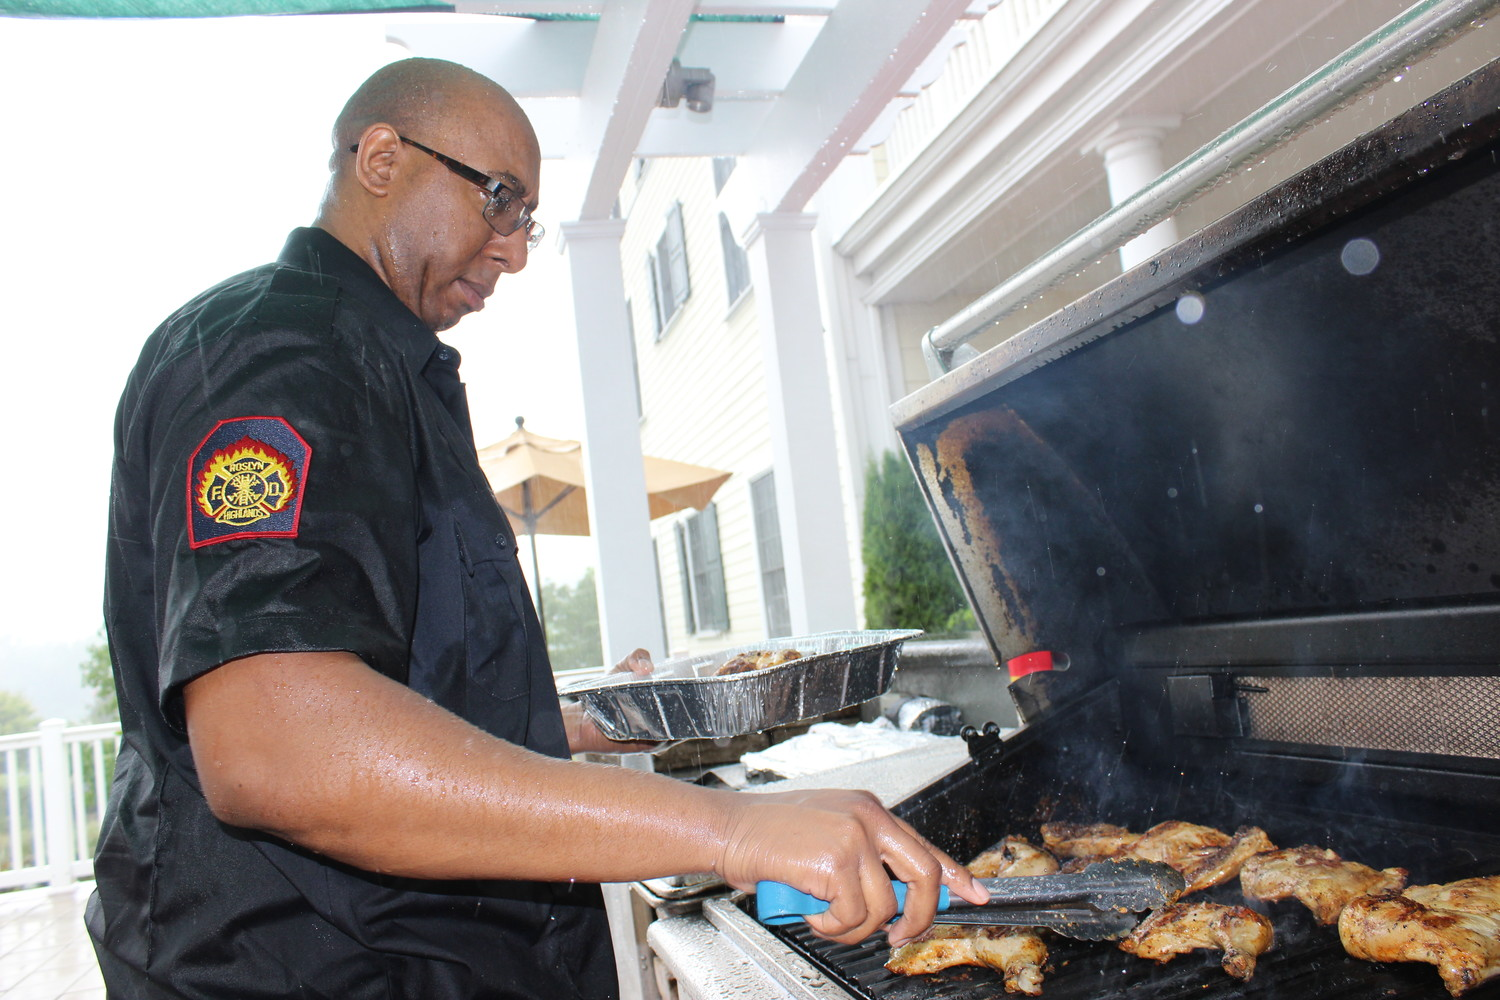 Despite the pounding rain, Chef John William, of the Roslyn Fire Department, grilled his best ribs.